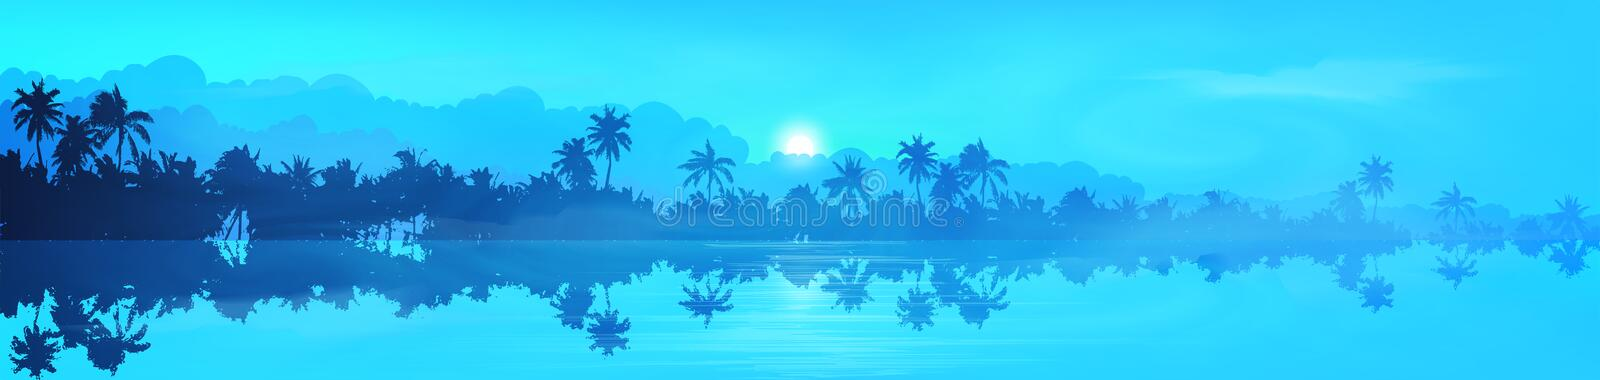 Dark palm trees silhouettes with water reflection in fog, blue vector tropical banner background.  royalty free illustration